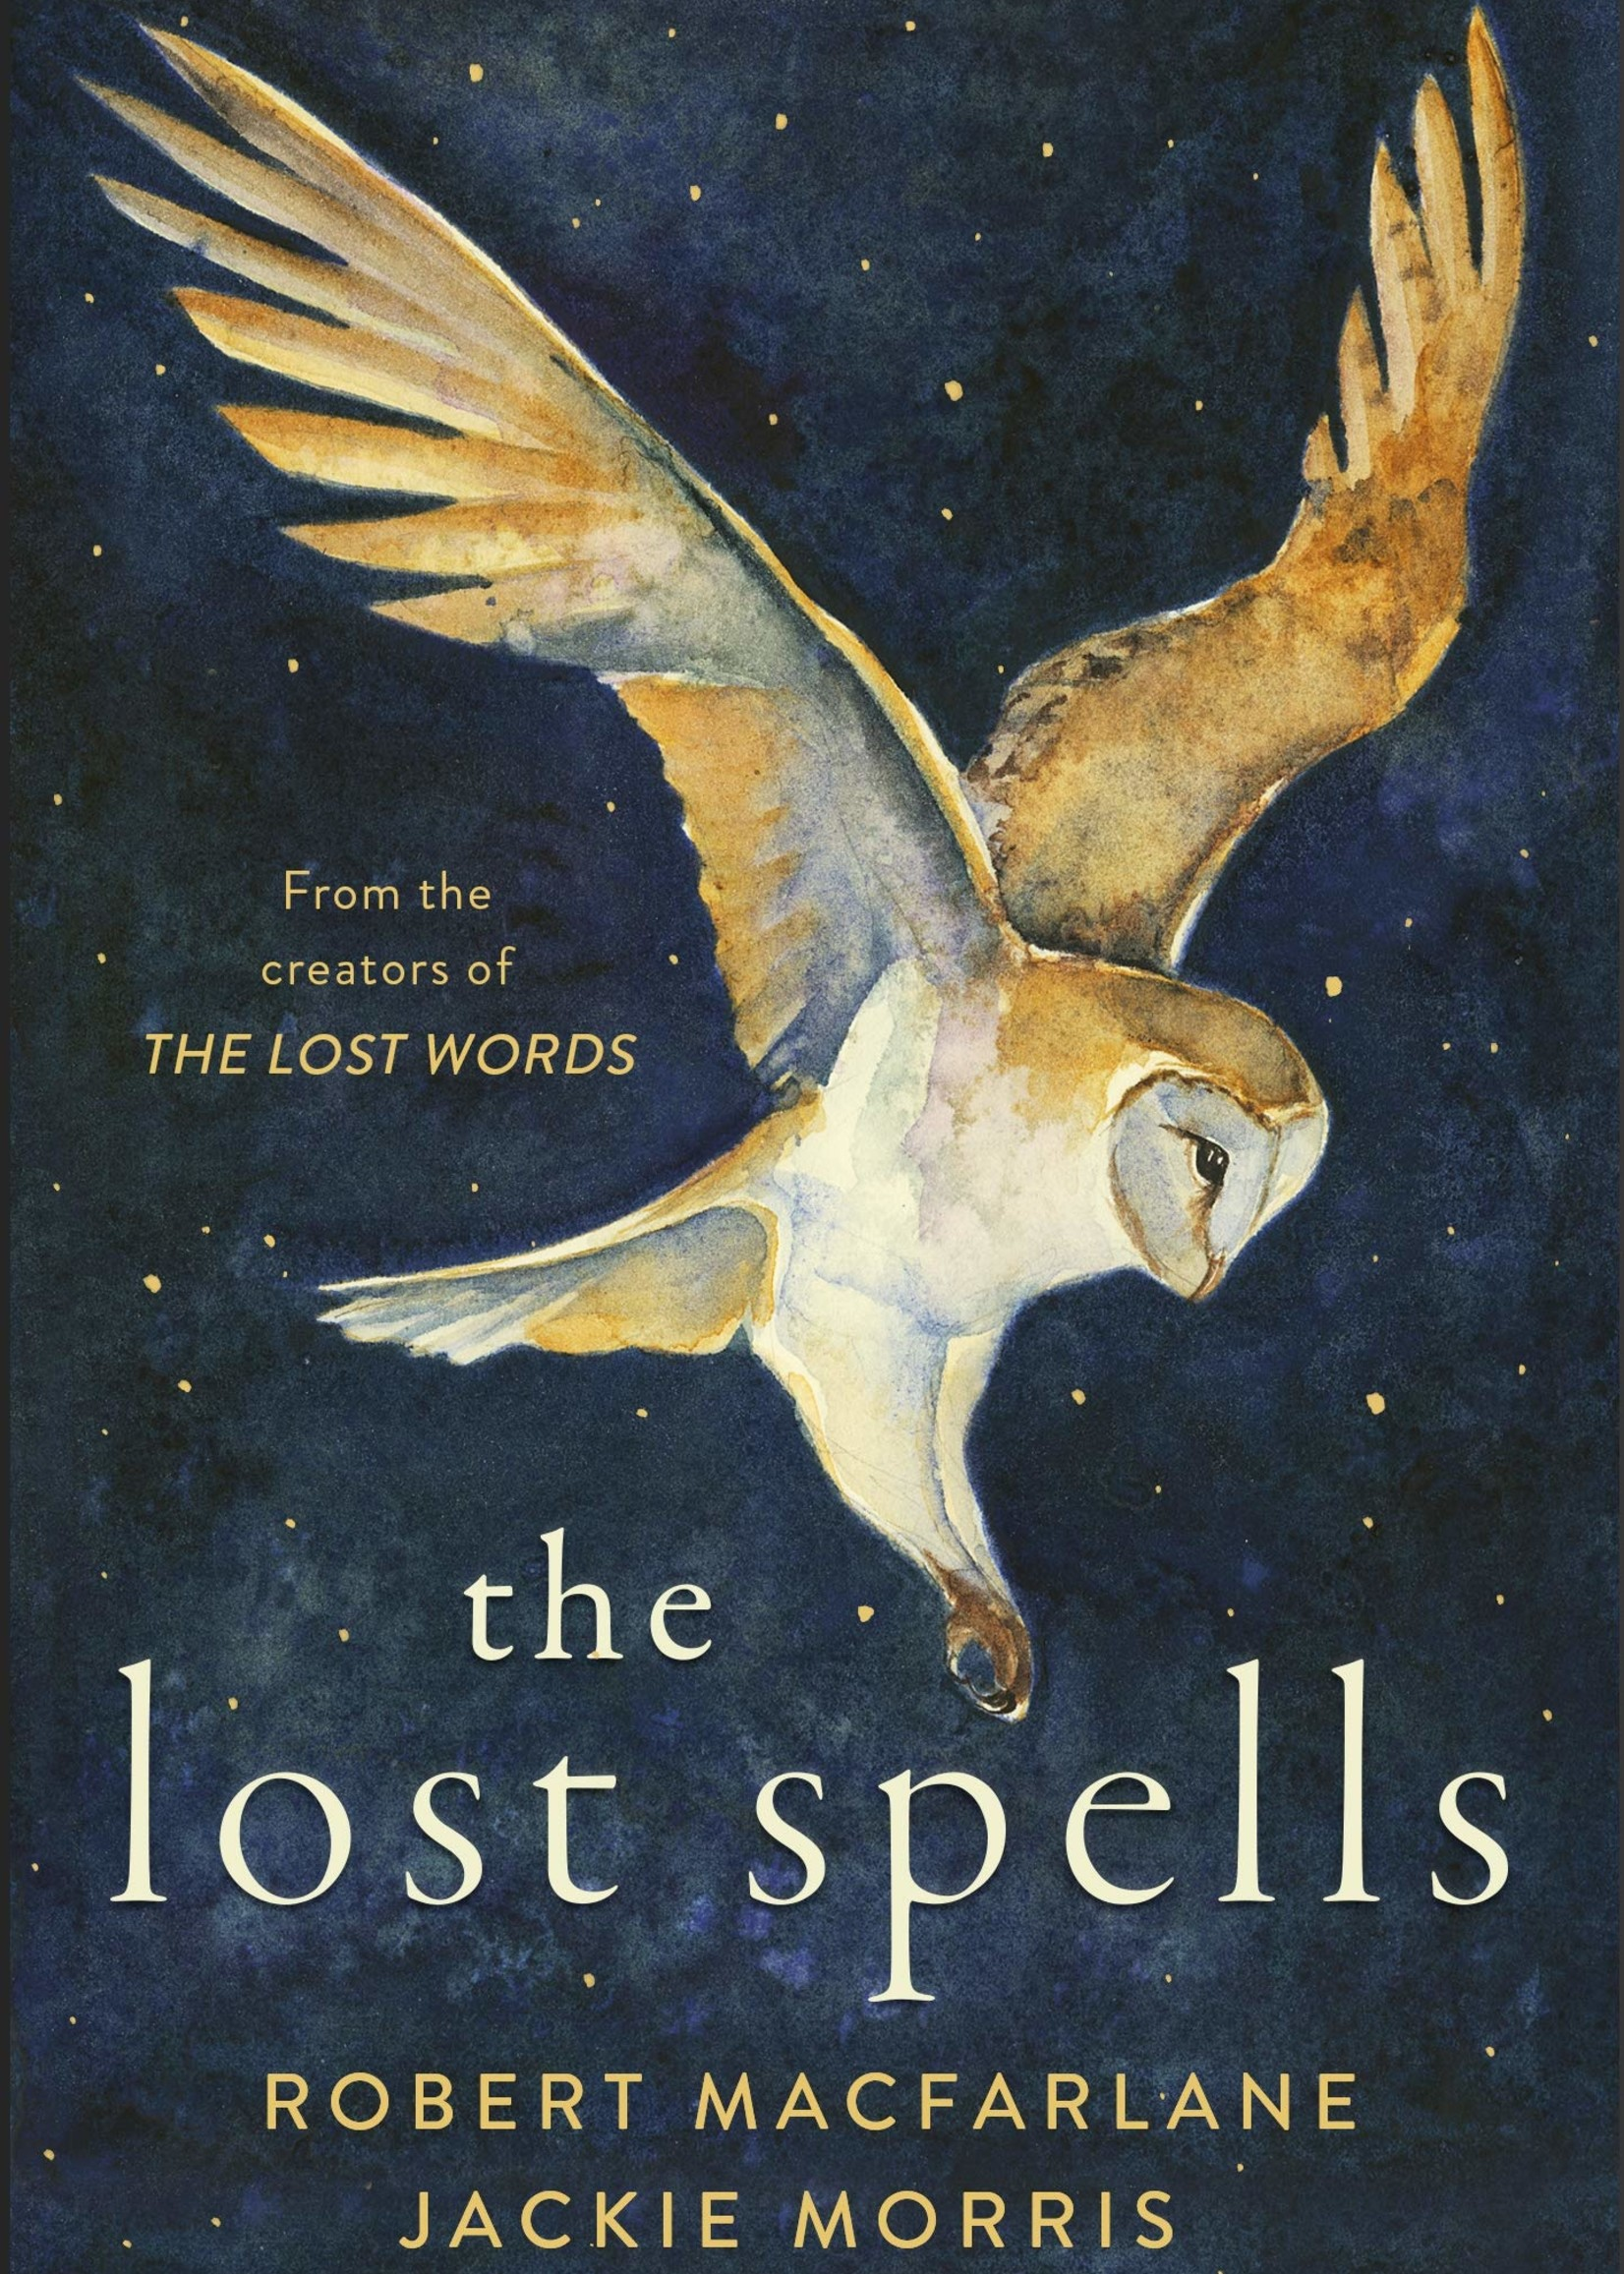 The Lost Spells - Hardcover